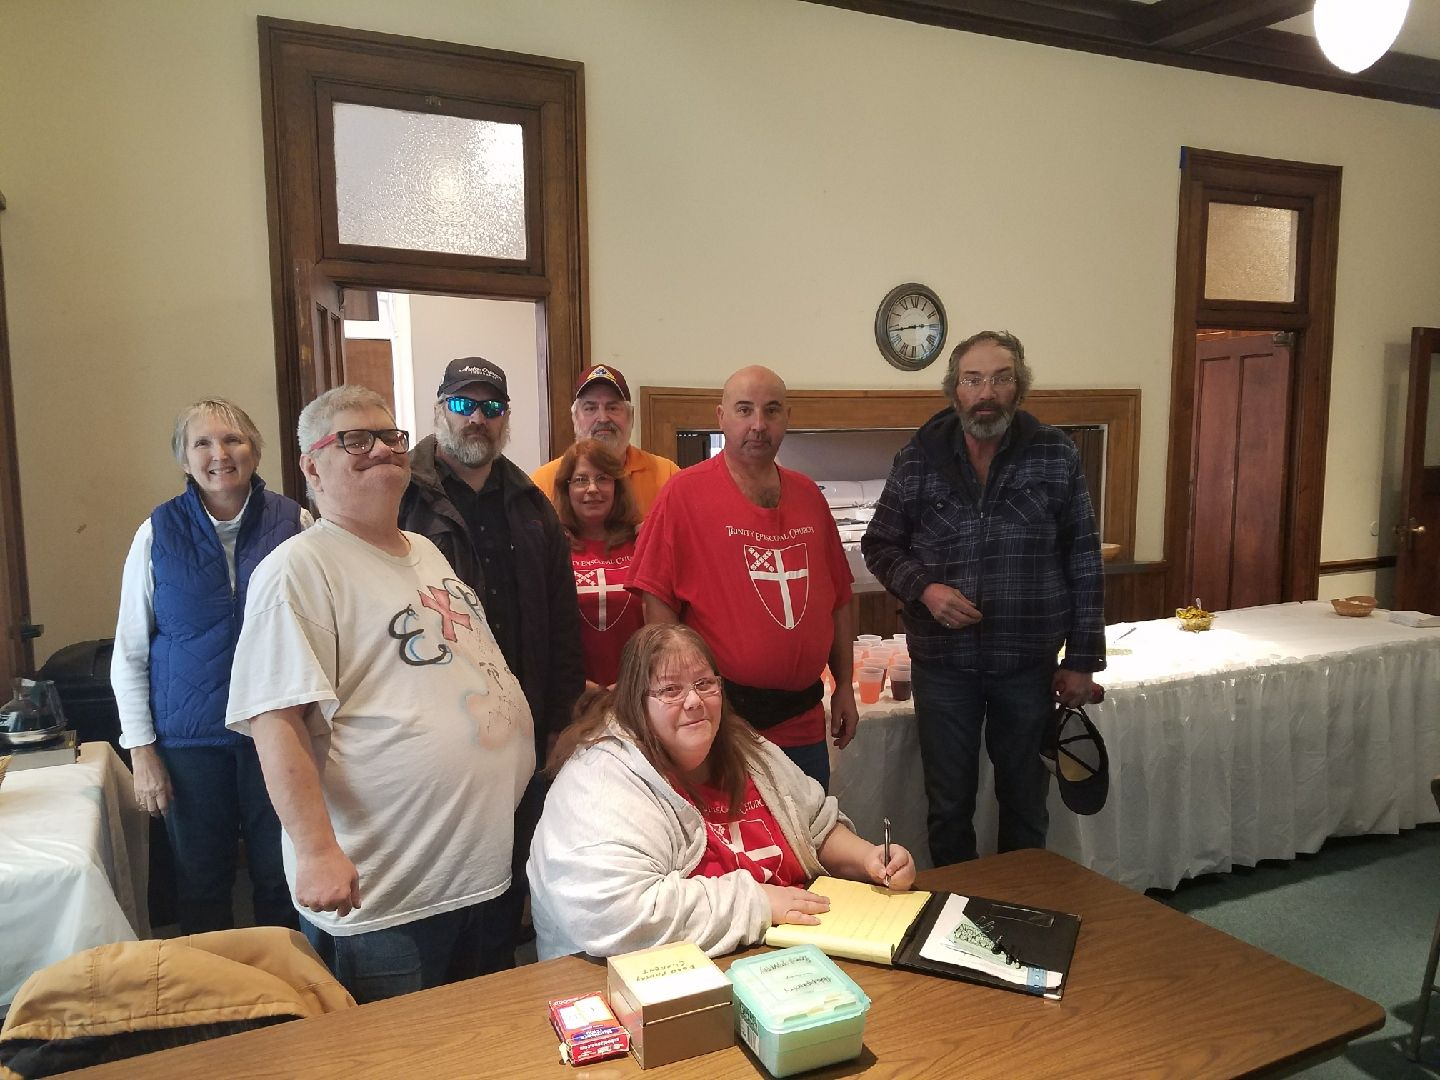 Team of volunteers: Food Pantry Distribution at Trinity Episcopal Church Logansport, Indiana